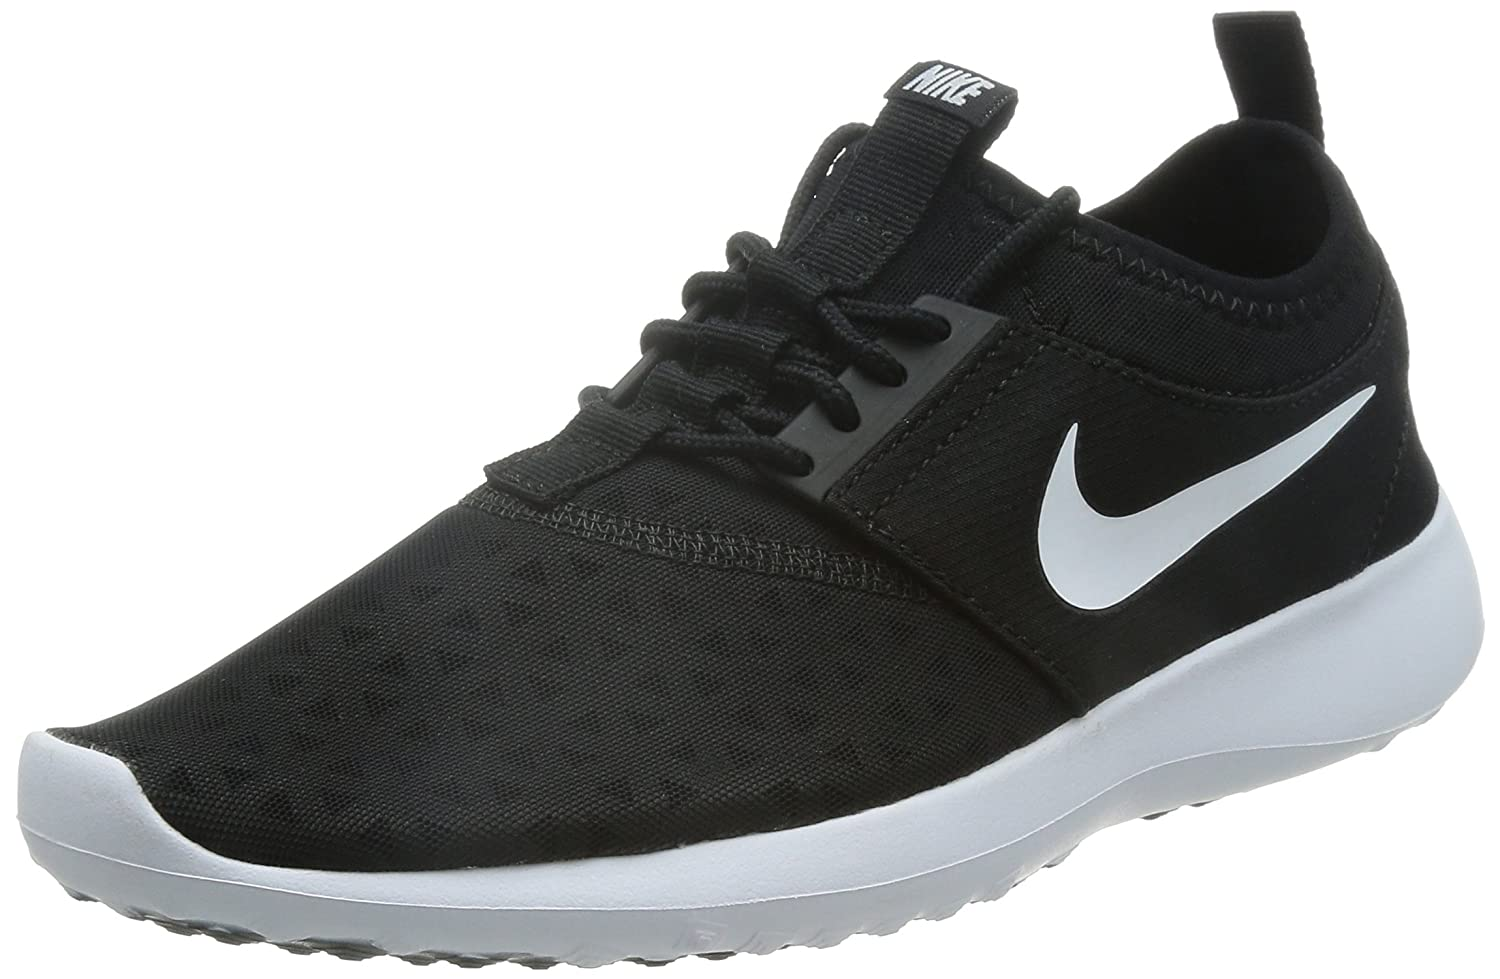 NIKE Women's Juvenate Running Shoe B01DJL9KF2 10 B(M) US|Black/White